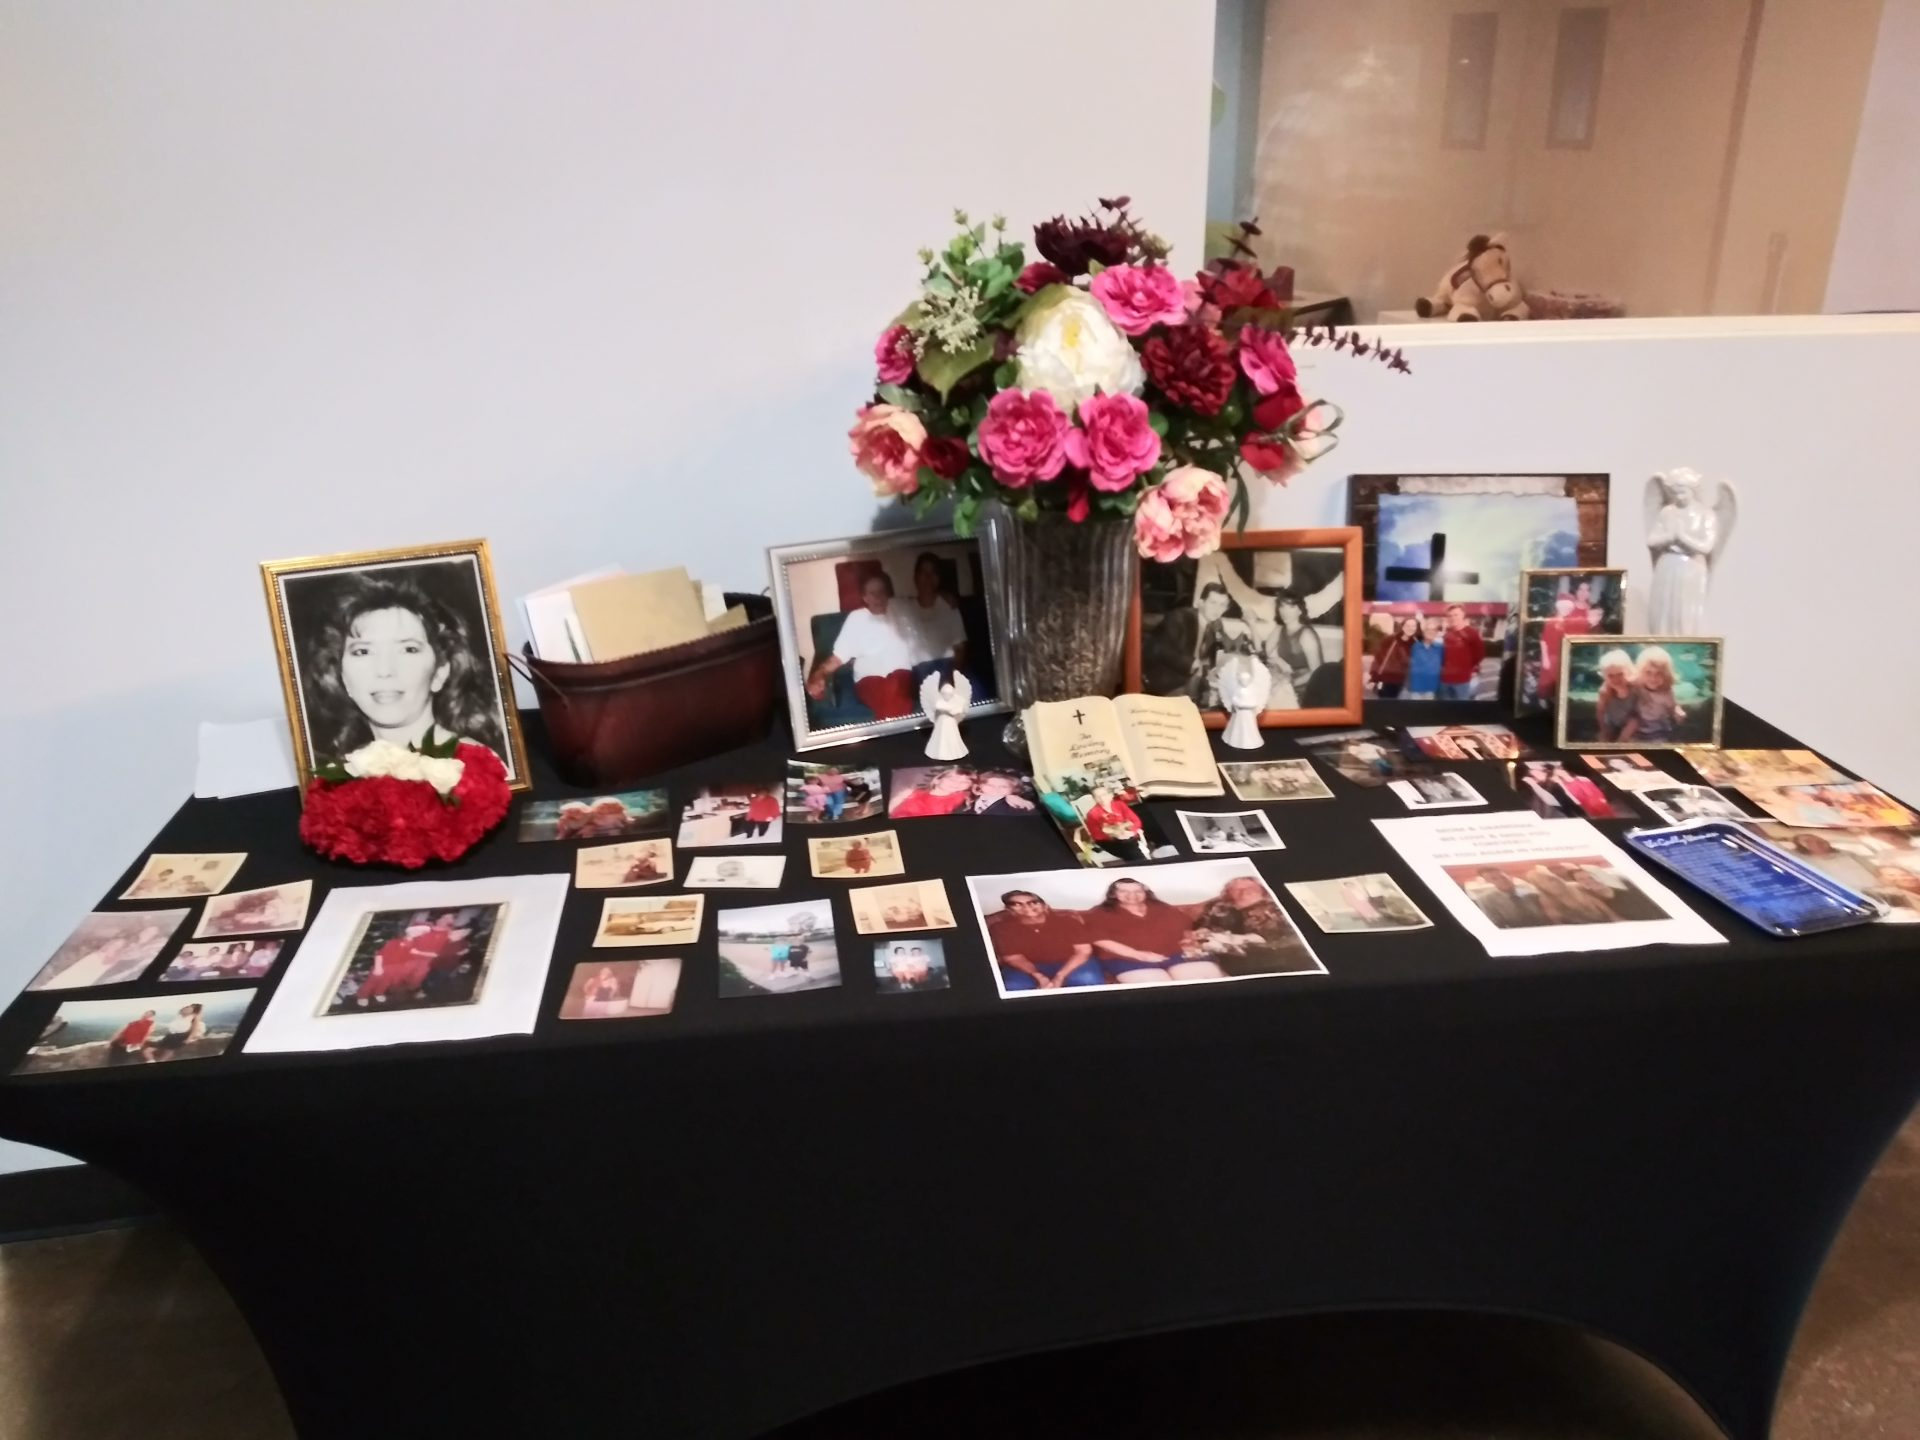 Table of Pictures of Evelyn's Life, Family and Friends at Memorial.